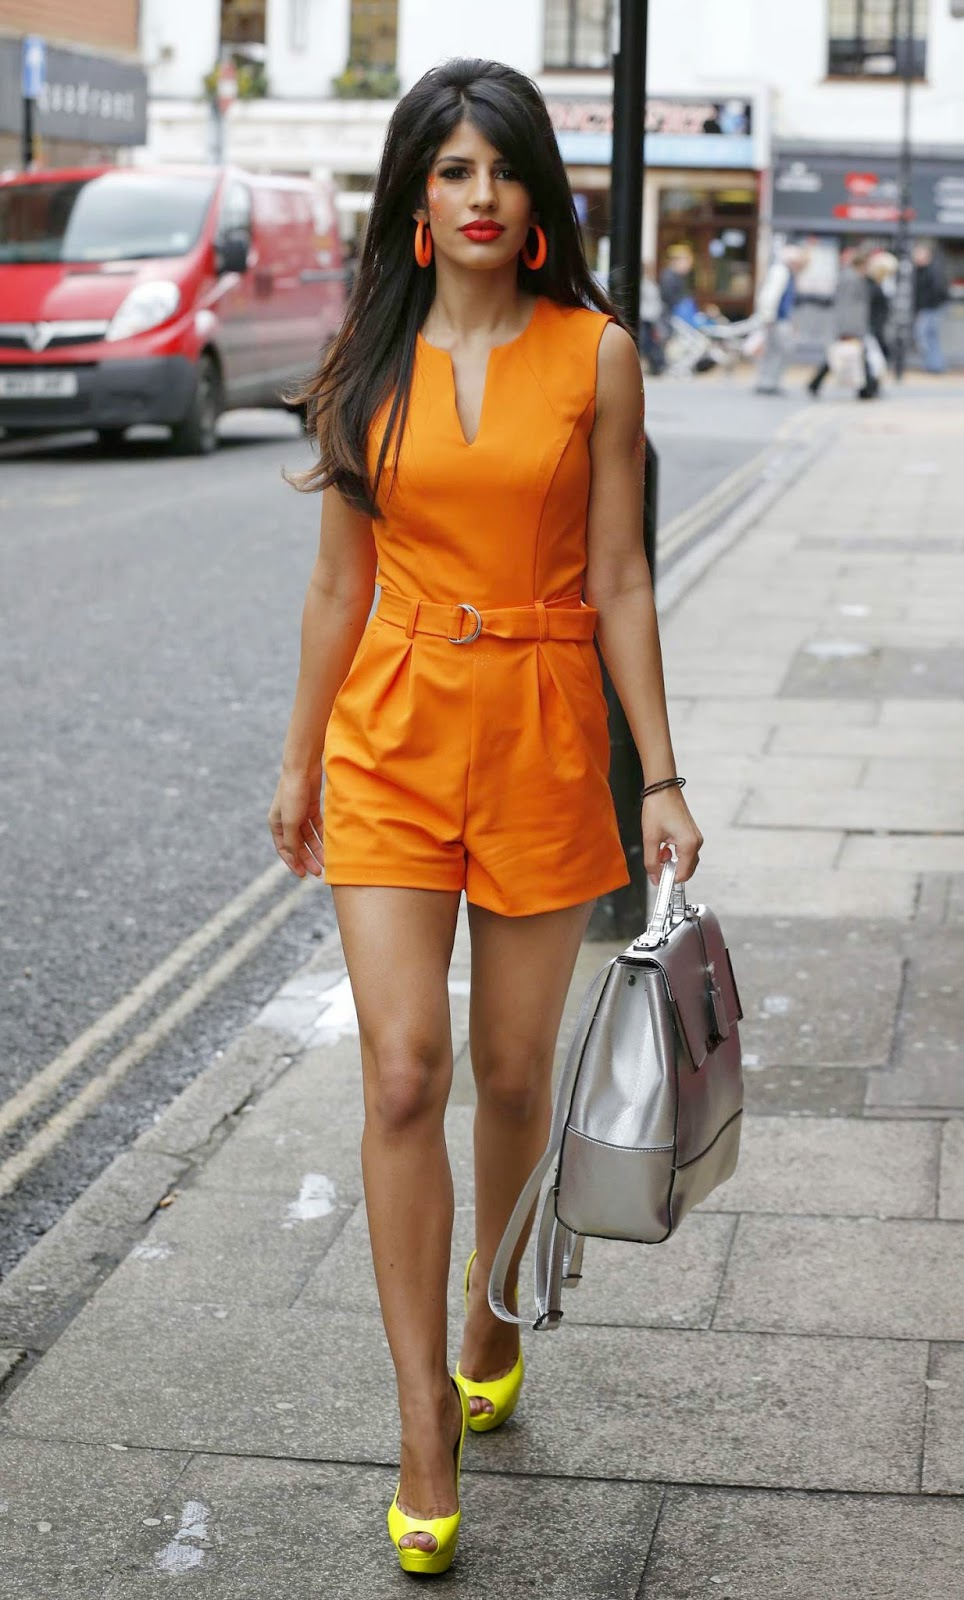 Jasmin Walia grabs attention in an orange playsuit out and about in Chelmsford